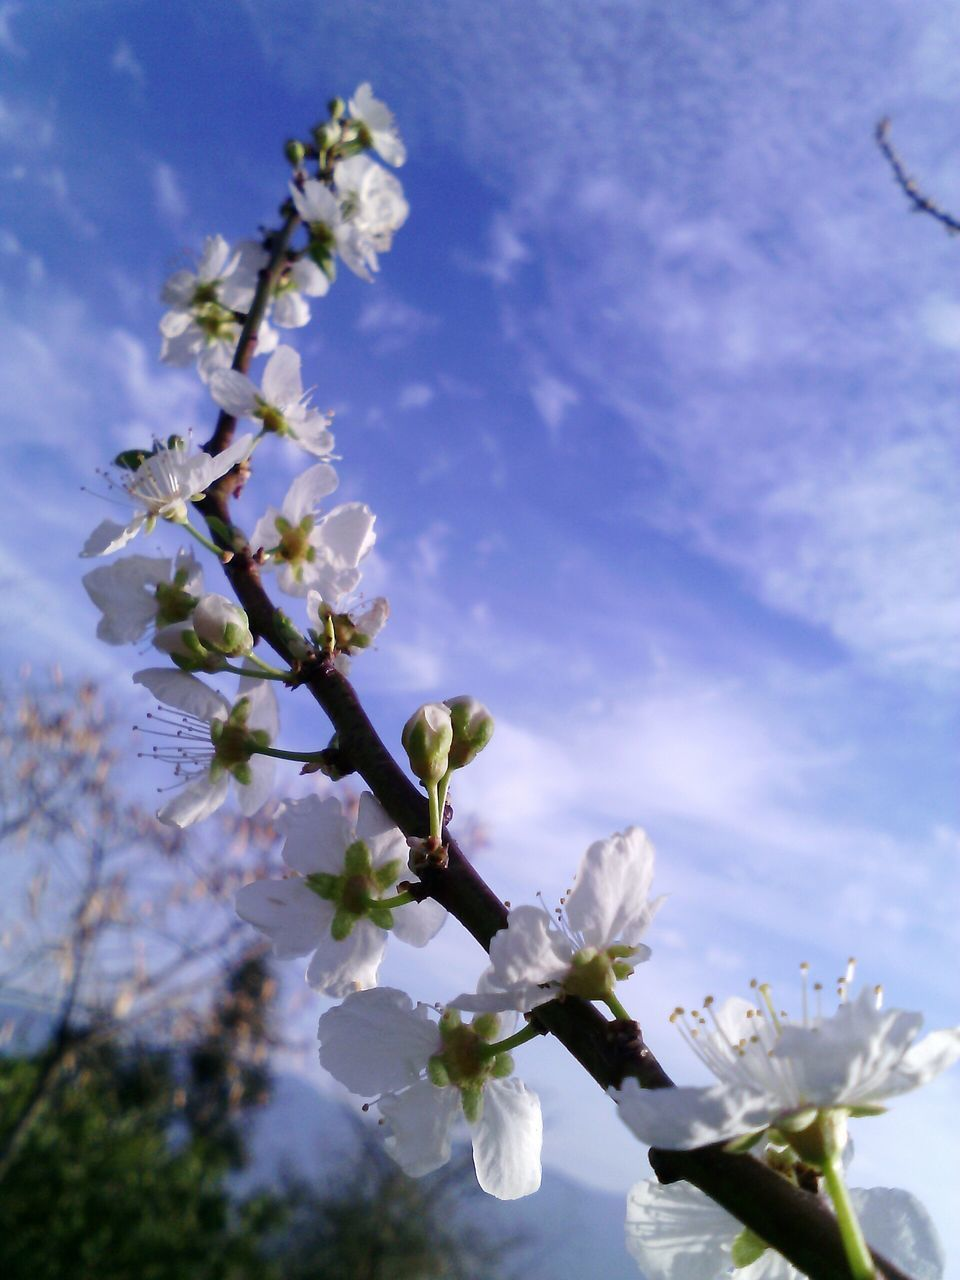 flower, fragility, blossom, beauty in nature, nature, growth, freshness, springtime, apple blossom, apple tree, tree, petal, white color, blooming, botany, no people, branch, orchard, spring, stamen, flower head, day, outdoors, close-up, sky